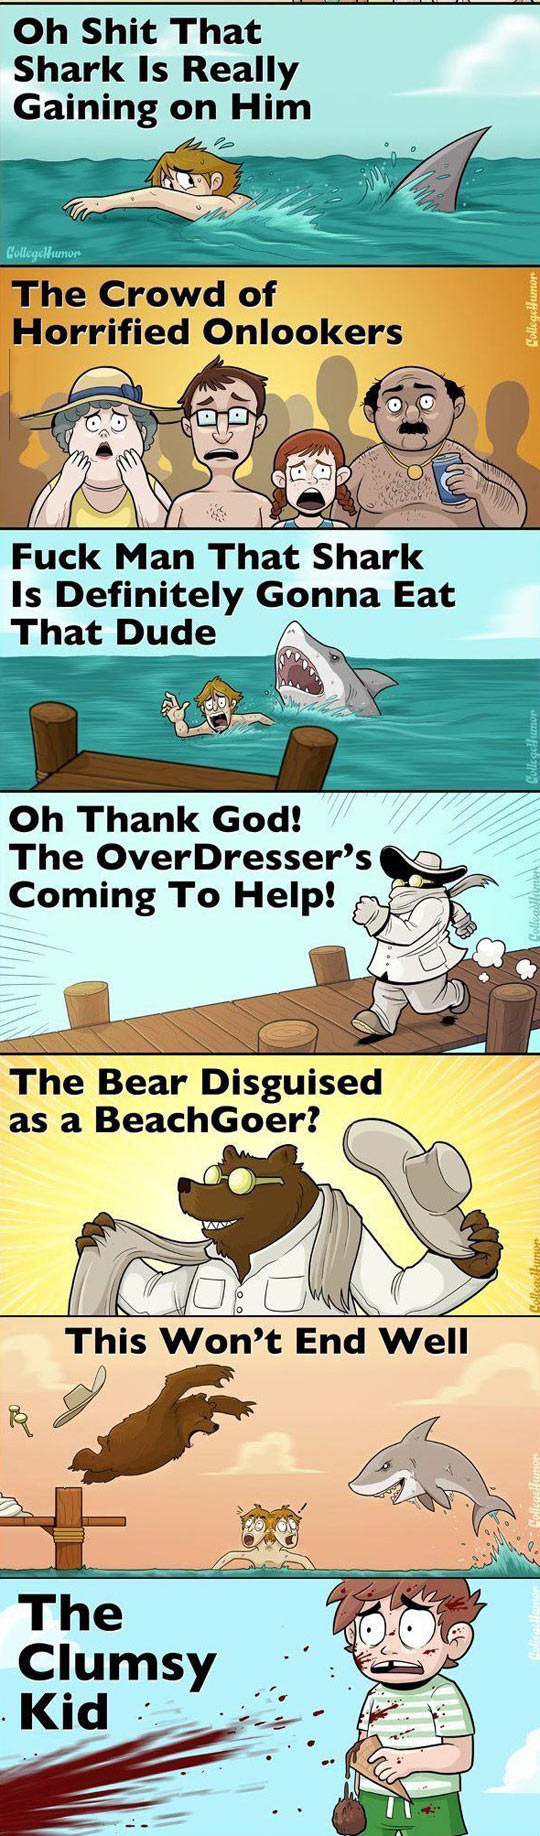 funny-picture-people-beach-shark-surfer